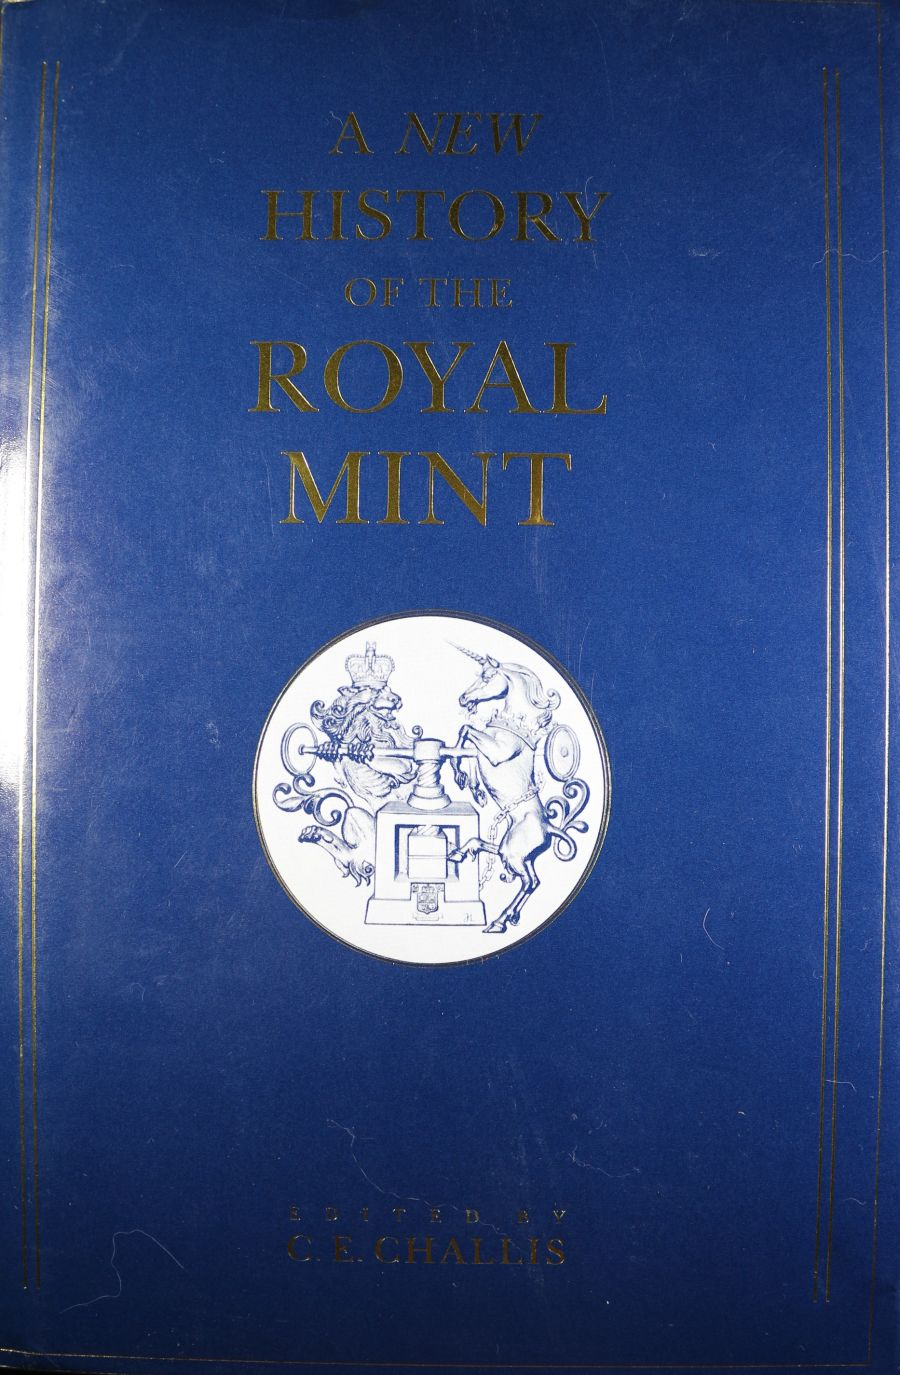 A New History of the Royal Mint. C. E. Challis. Very good cond.